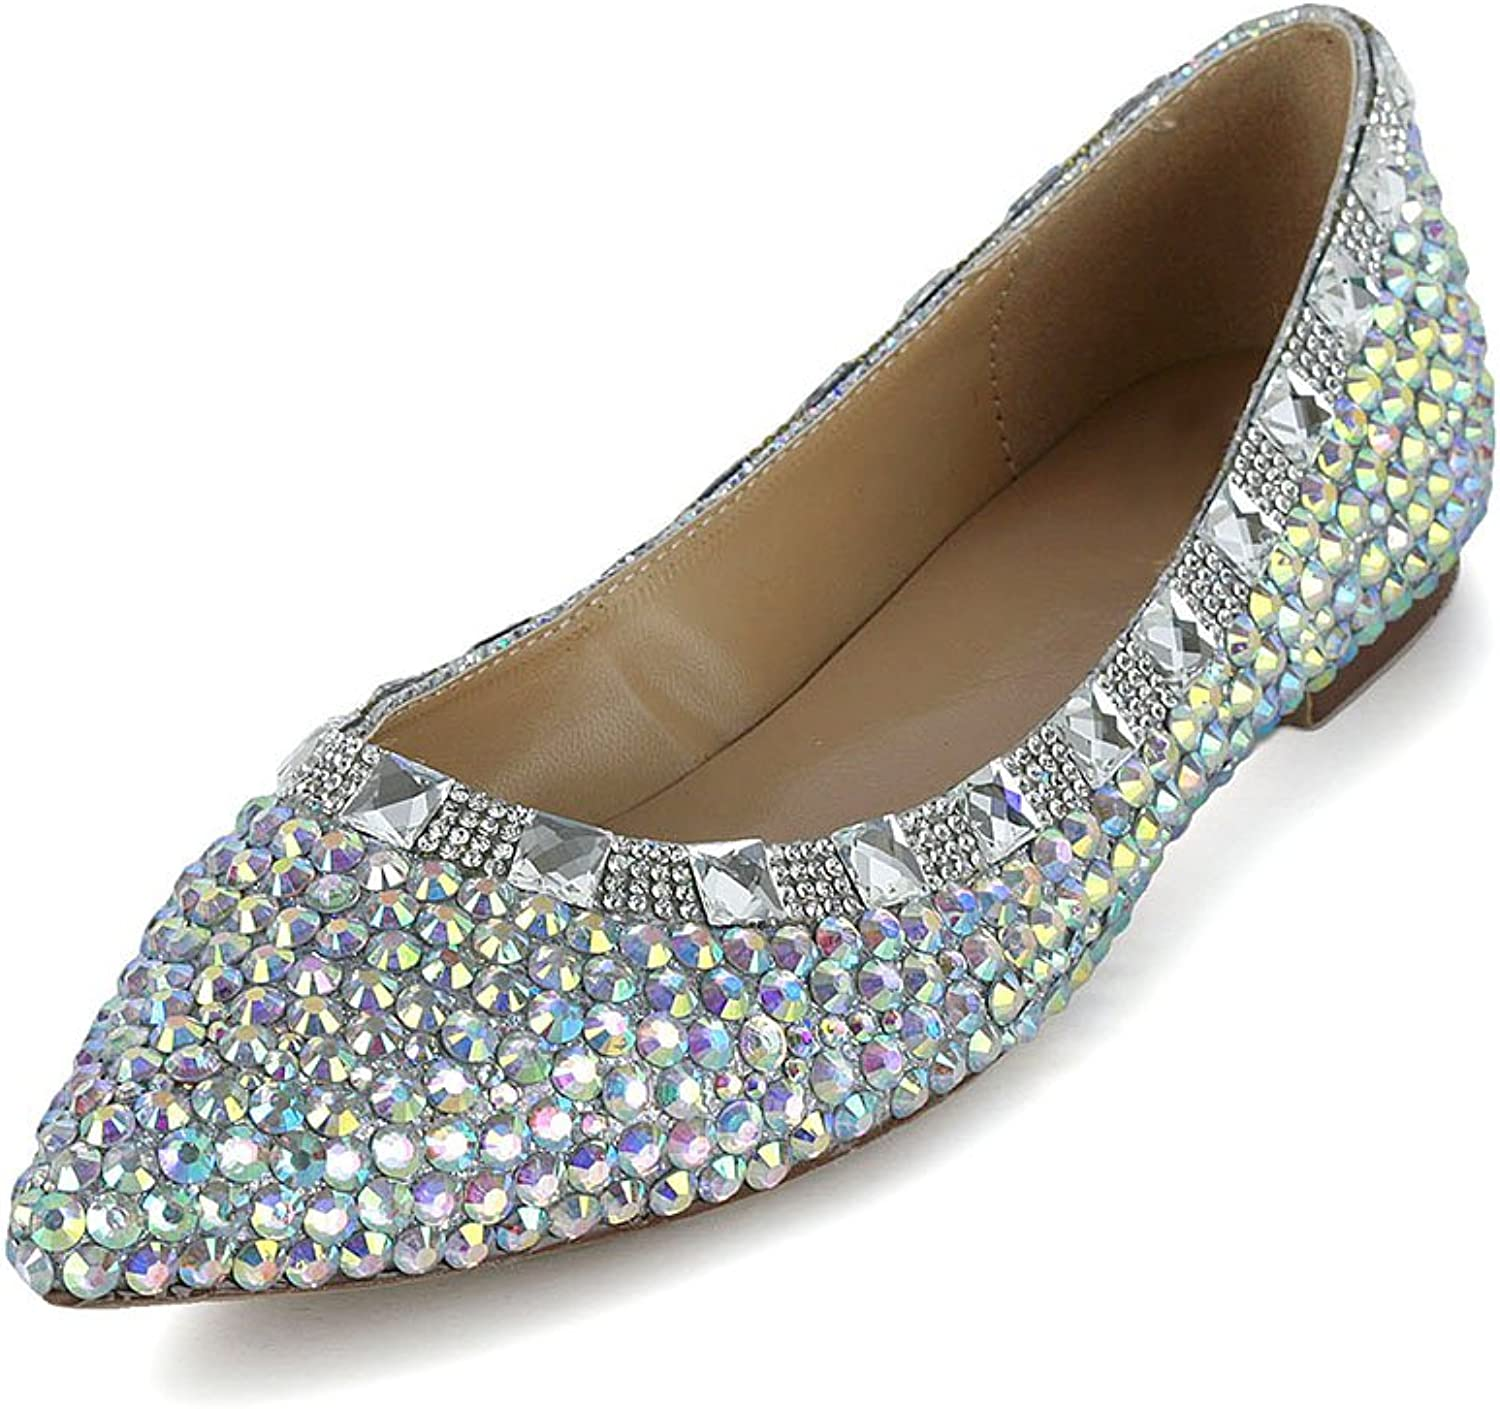 Lacitena Patent Leather colorful Diamond Pointed Toe Flat Women Wedding Party shoes